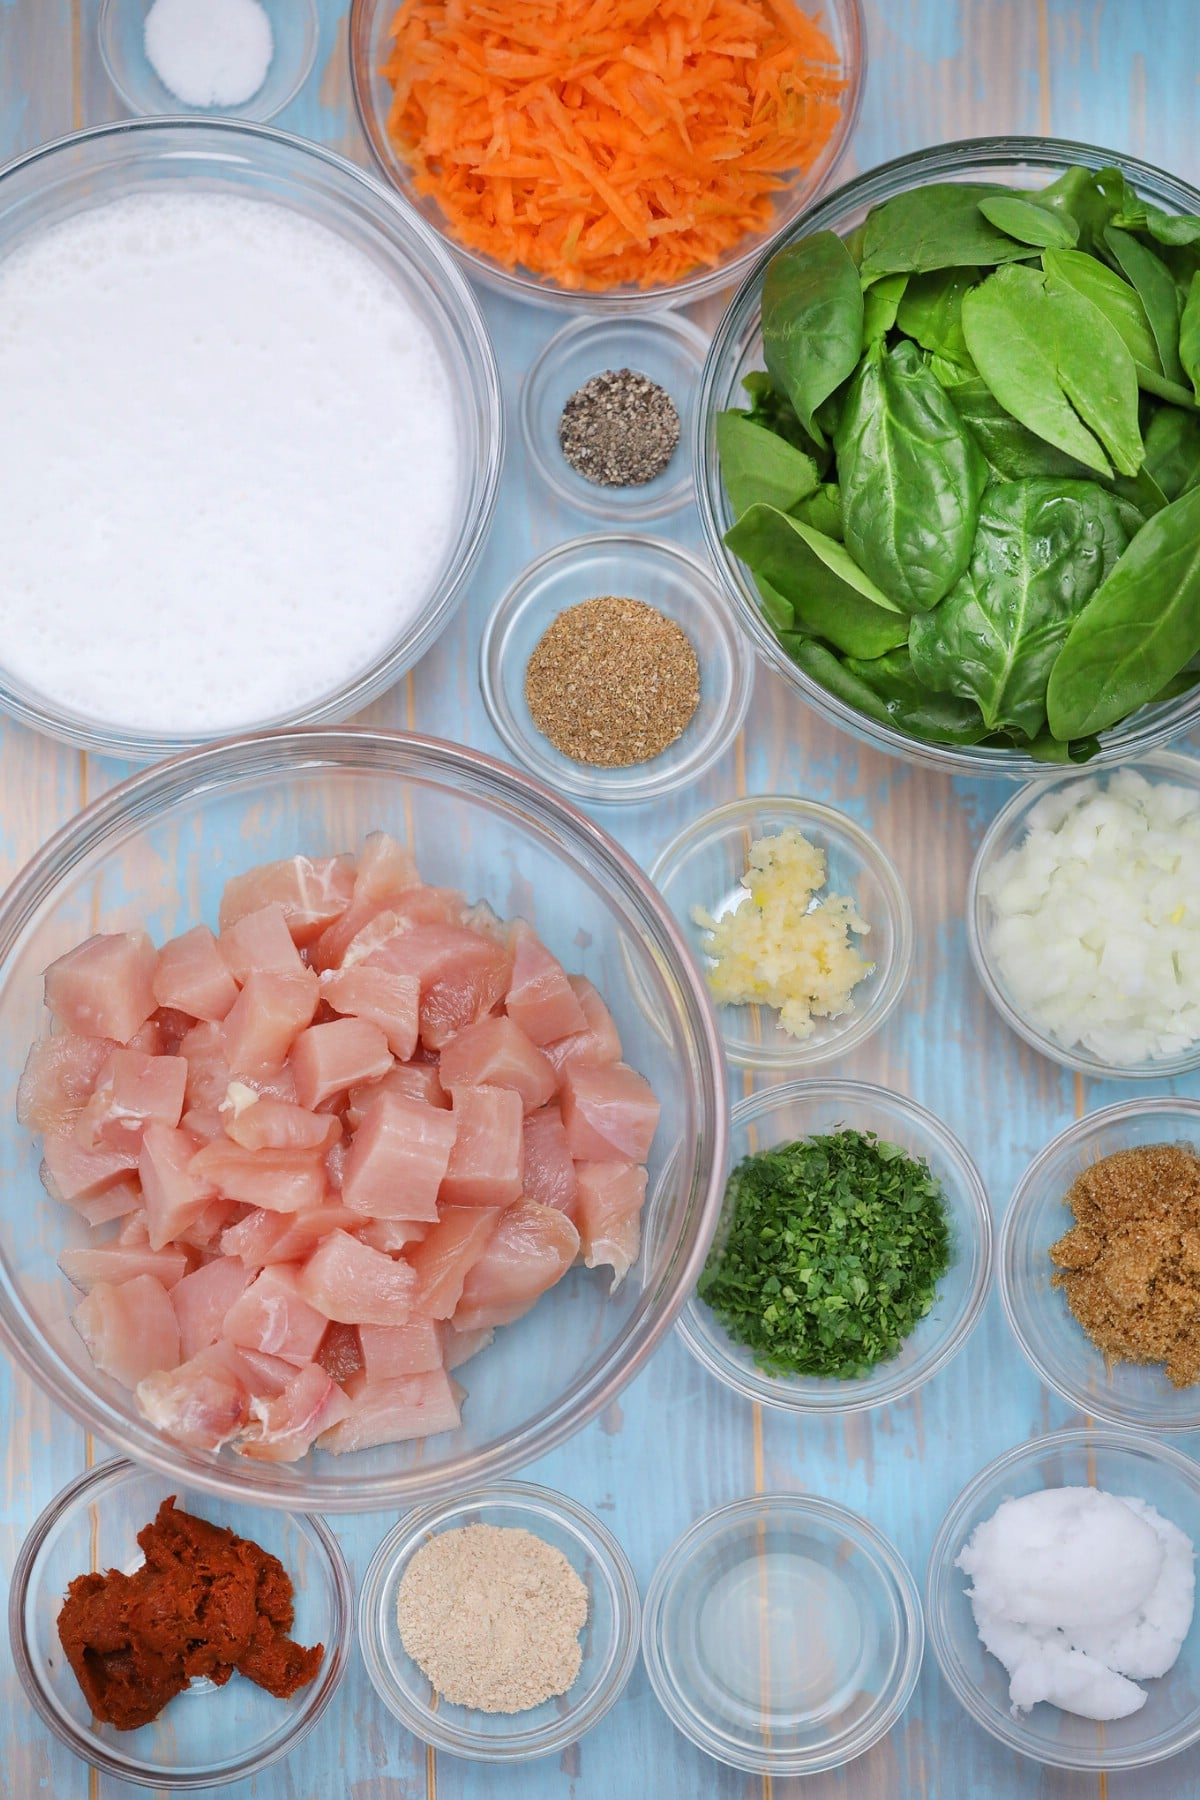 Ingredients for making thai chicken coconut curry